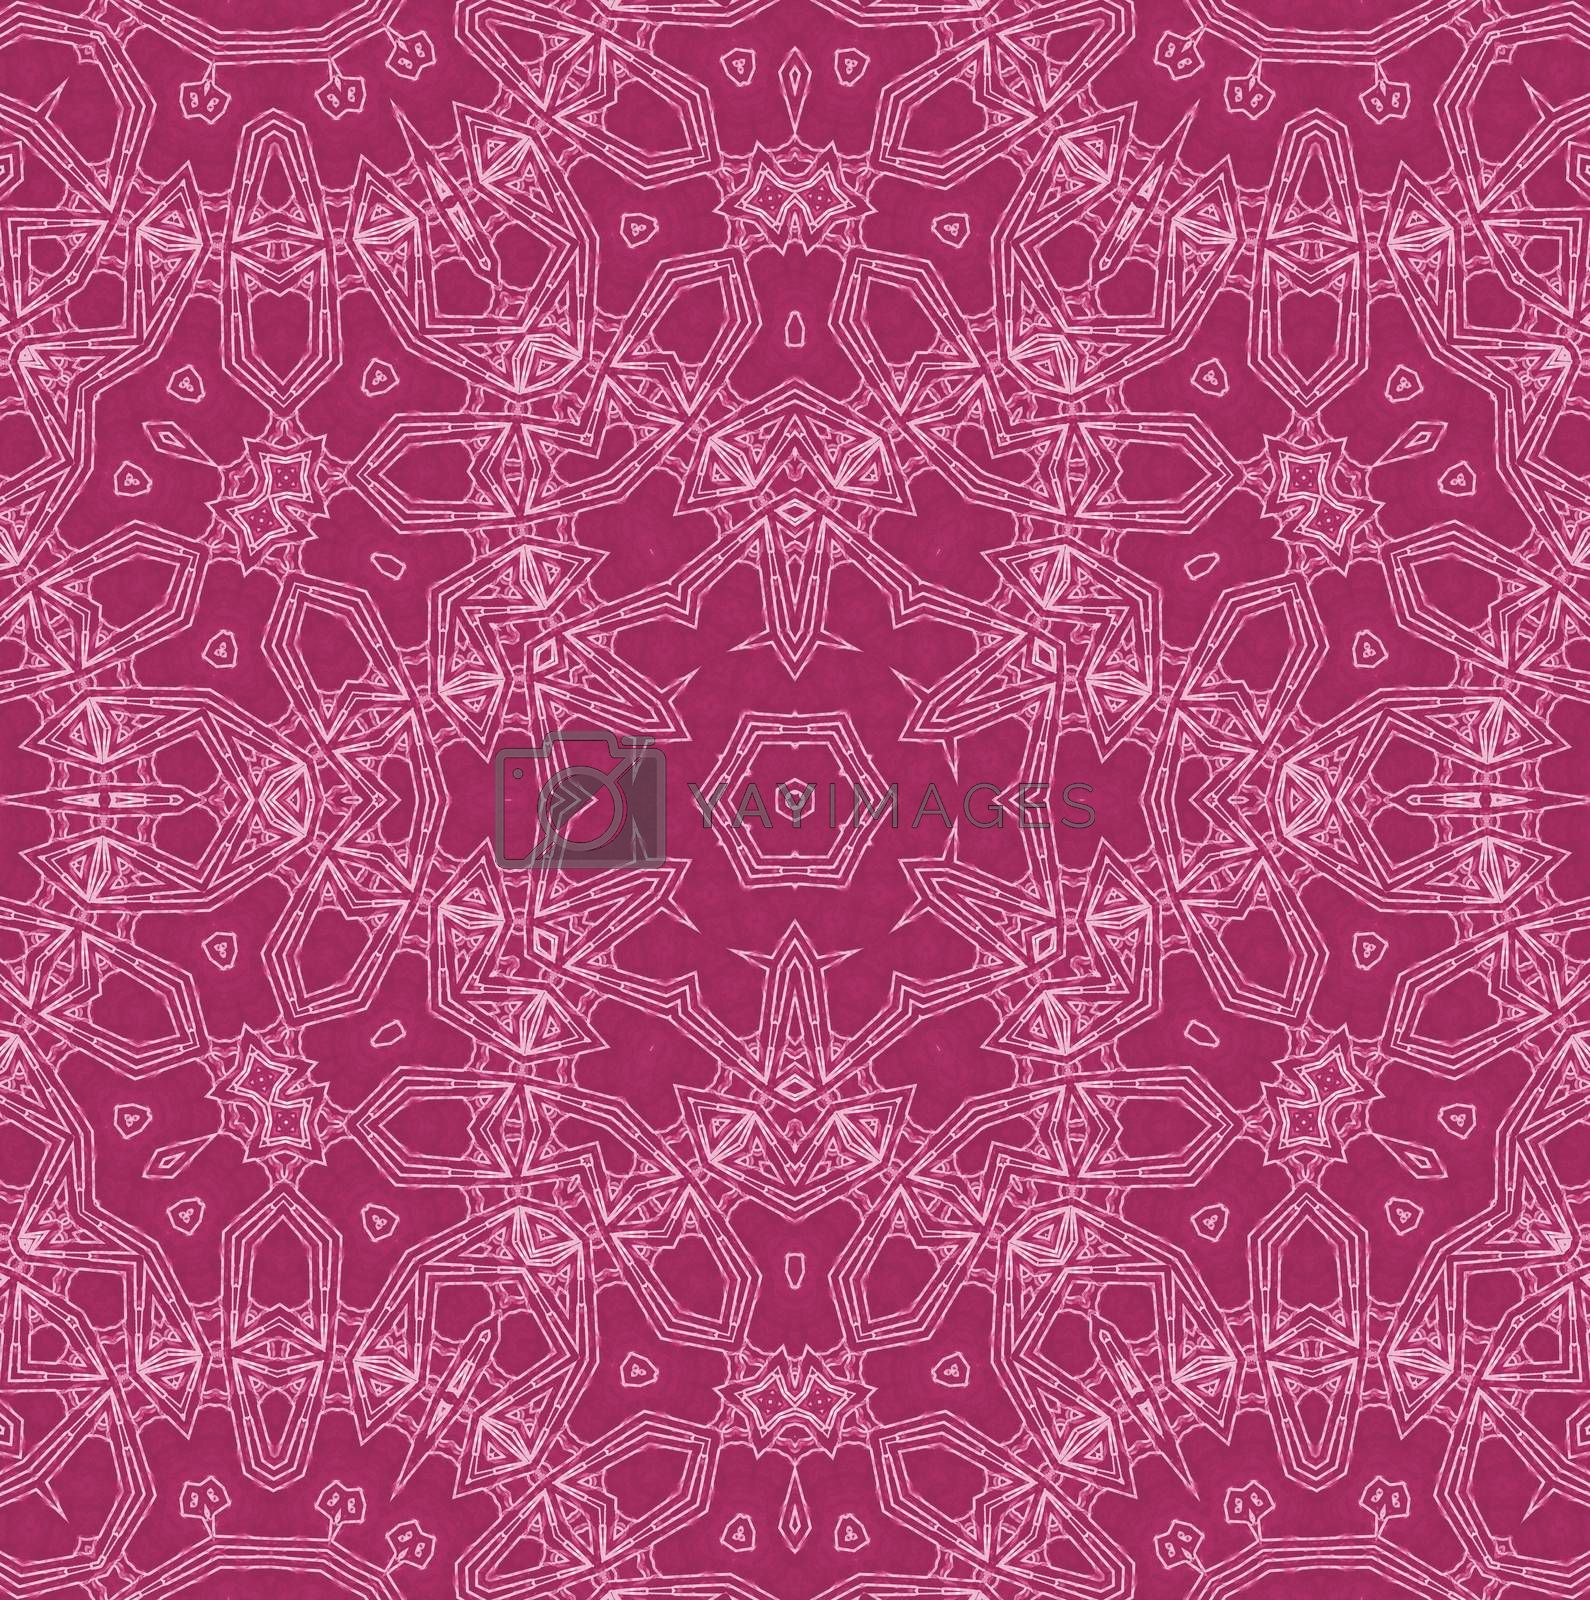 Abstract white pattern on crimson background